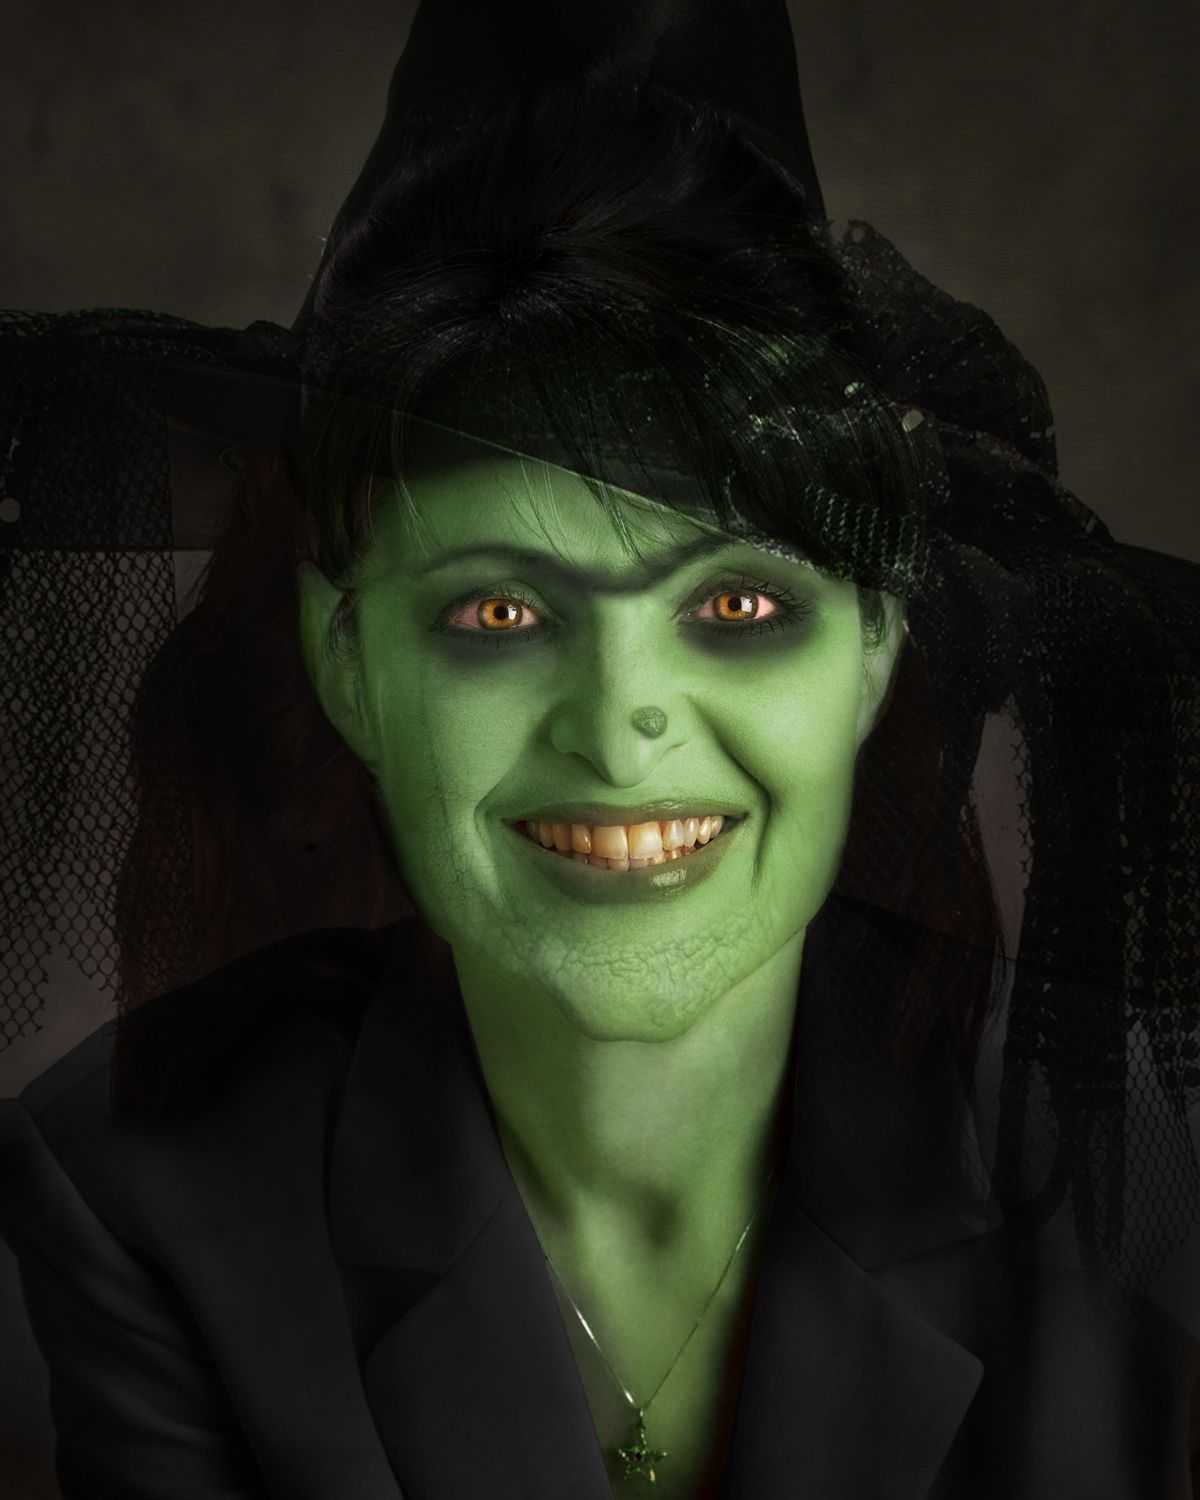 witch makeup | ... with makeup take this picture of sarah palin ...